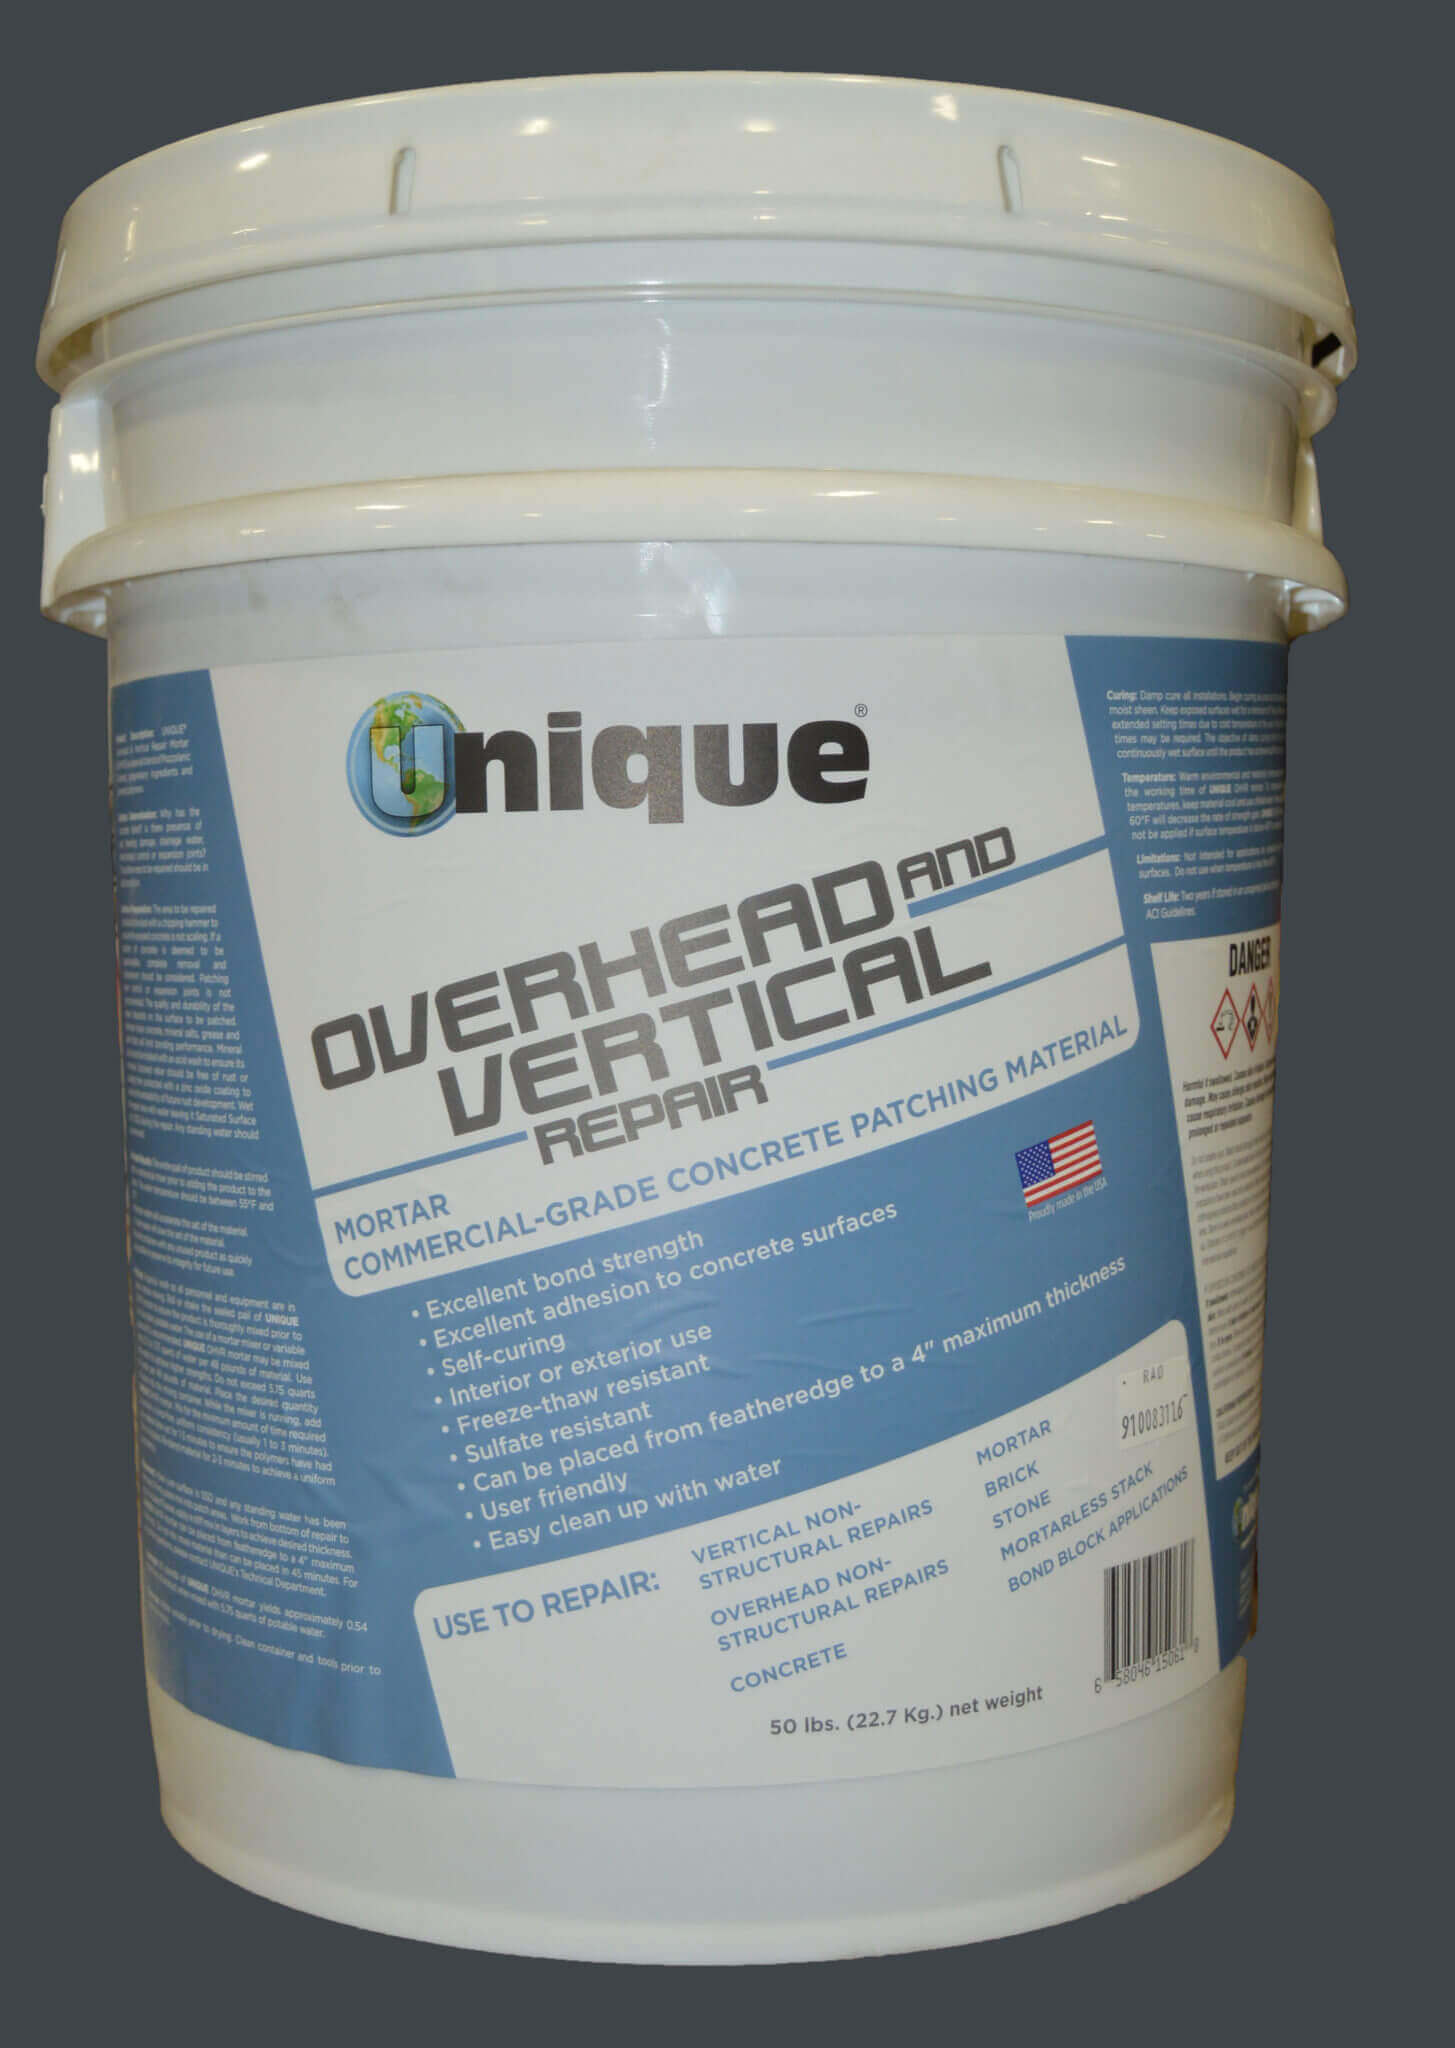 A 50-lb. pail of UNIQUE overhead concrete mix and overhead repair mortar